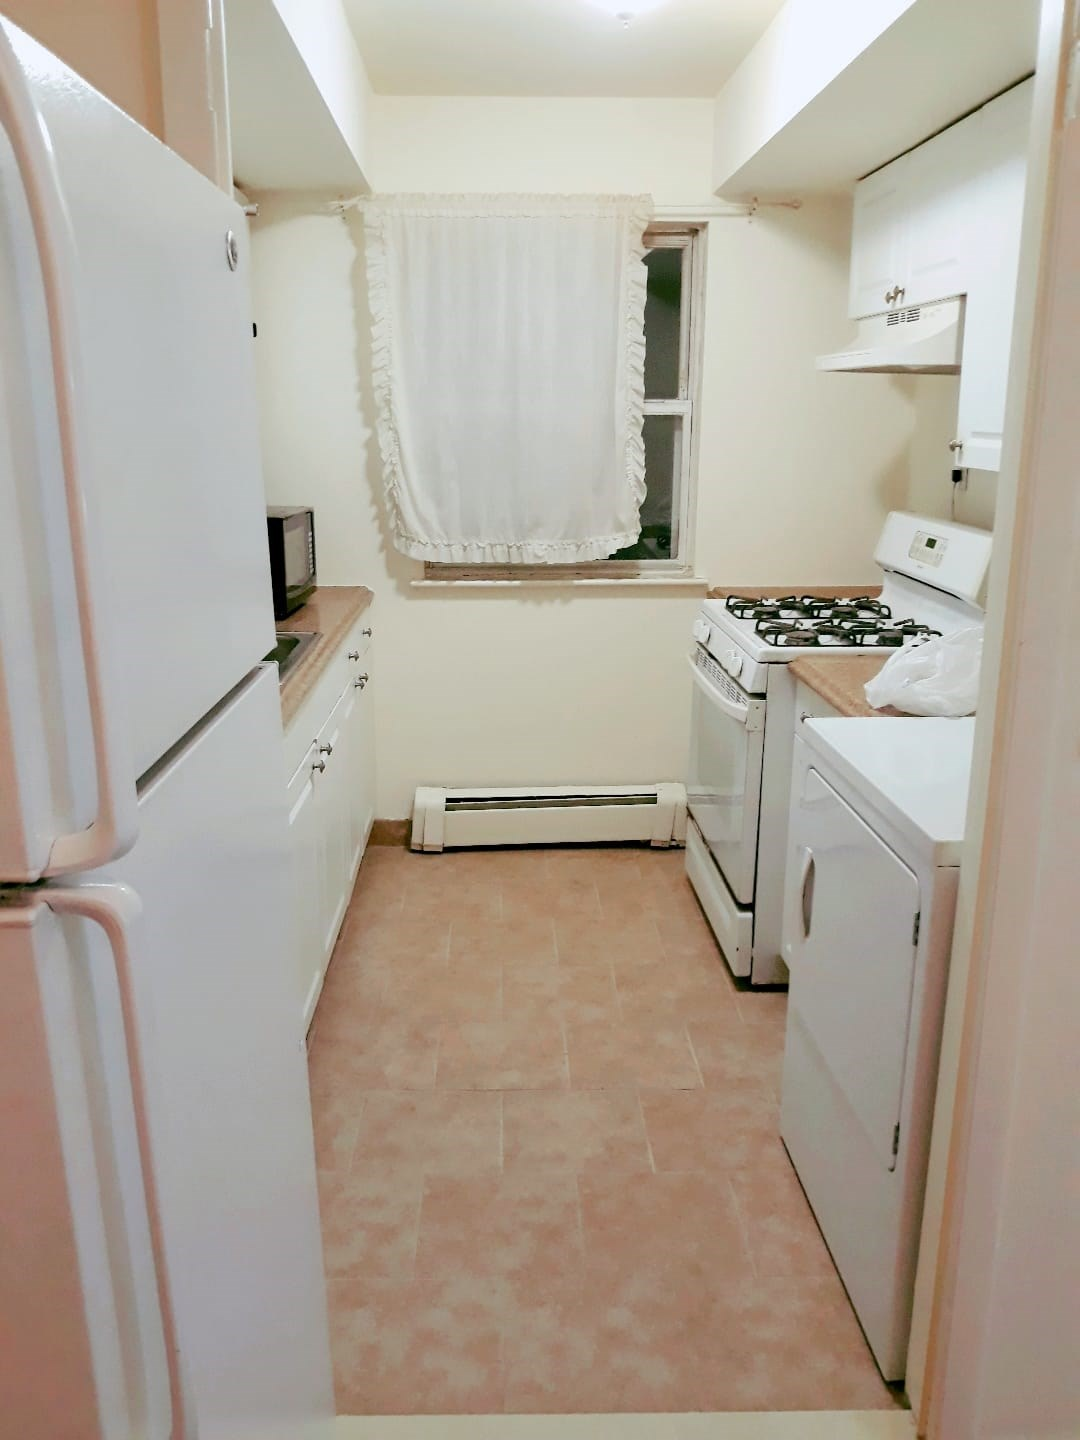 Close To Metro Park Station And Oak Tree Road ( 2 Bed Room Spacious  Apartment)   2 BHK Apartments and Flats in Iselin, NJ   1186150 - Sulekha  Rentals